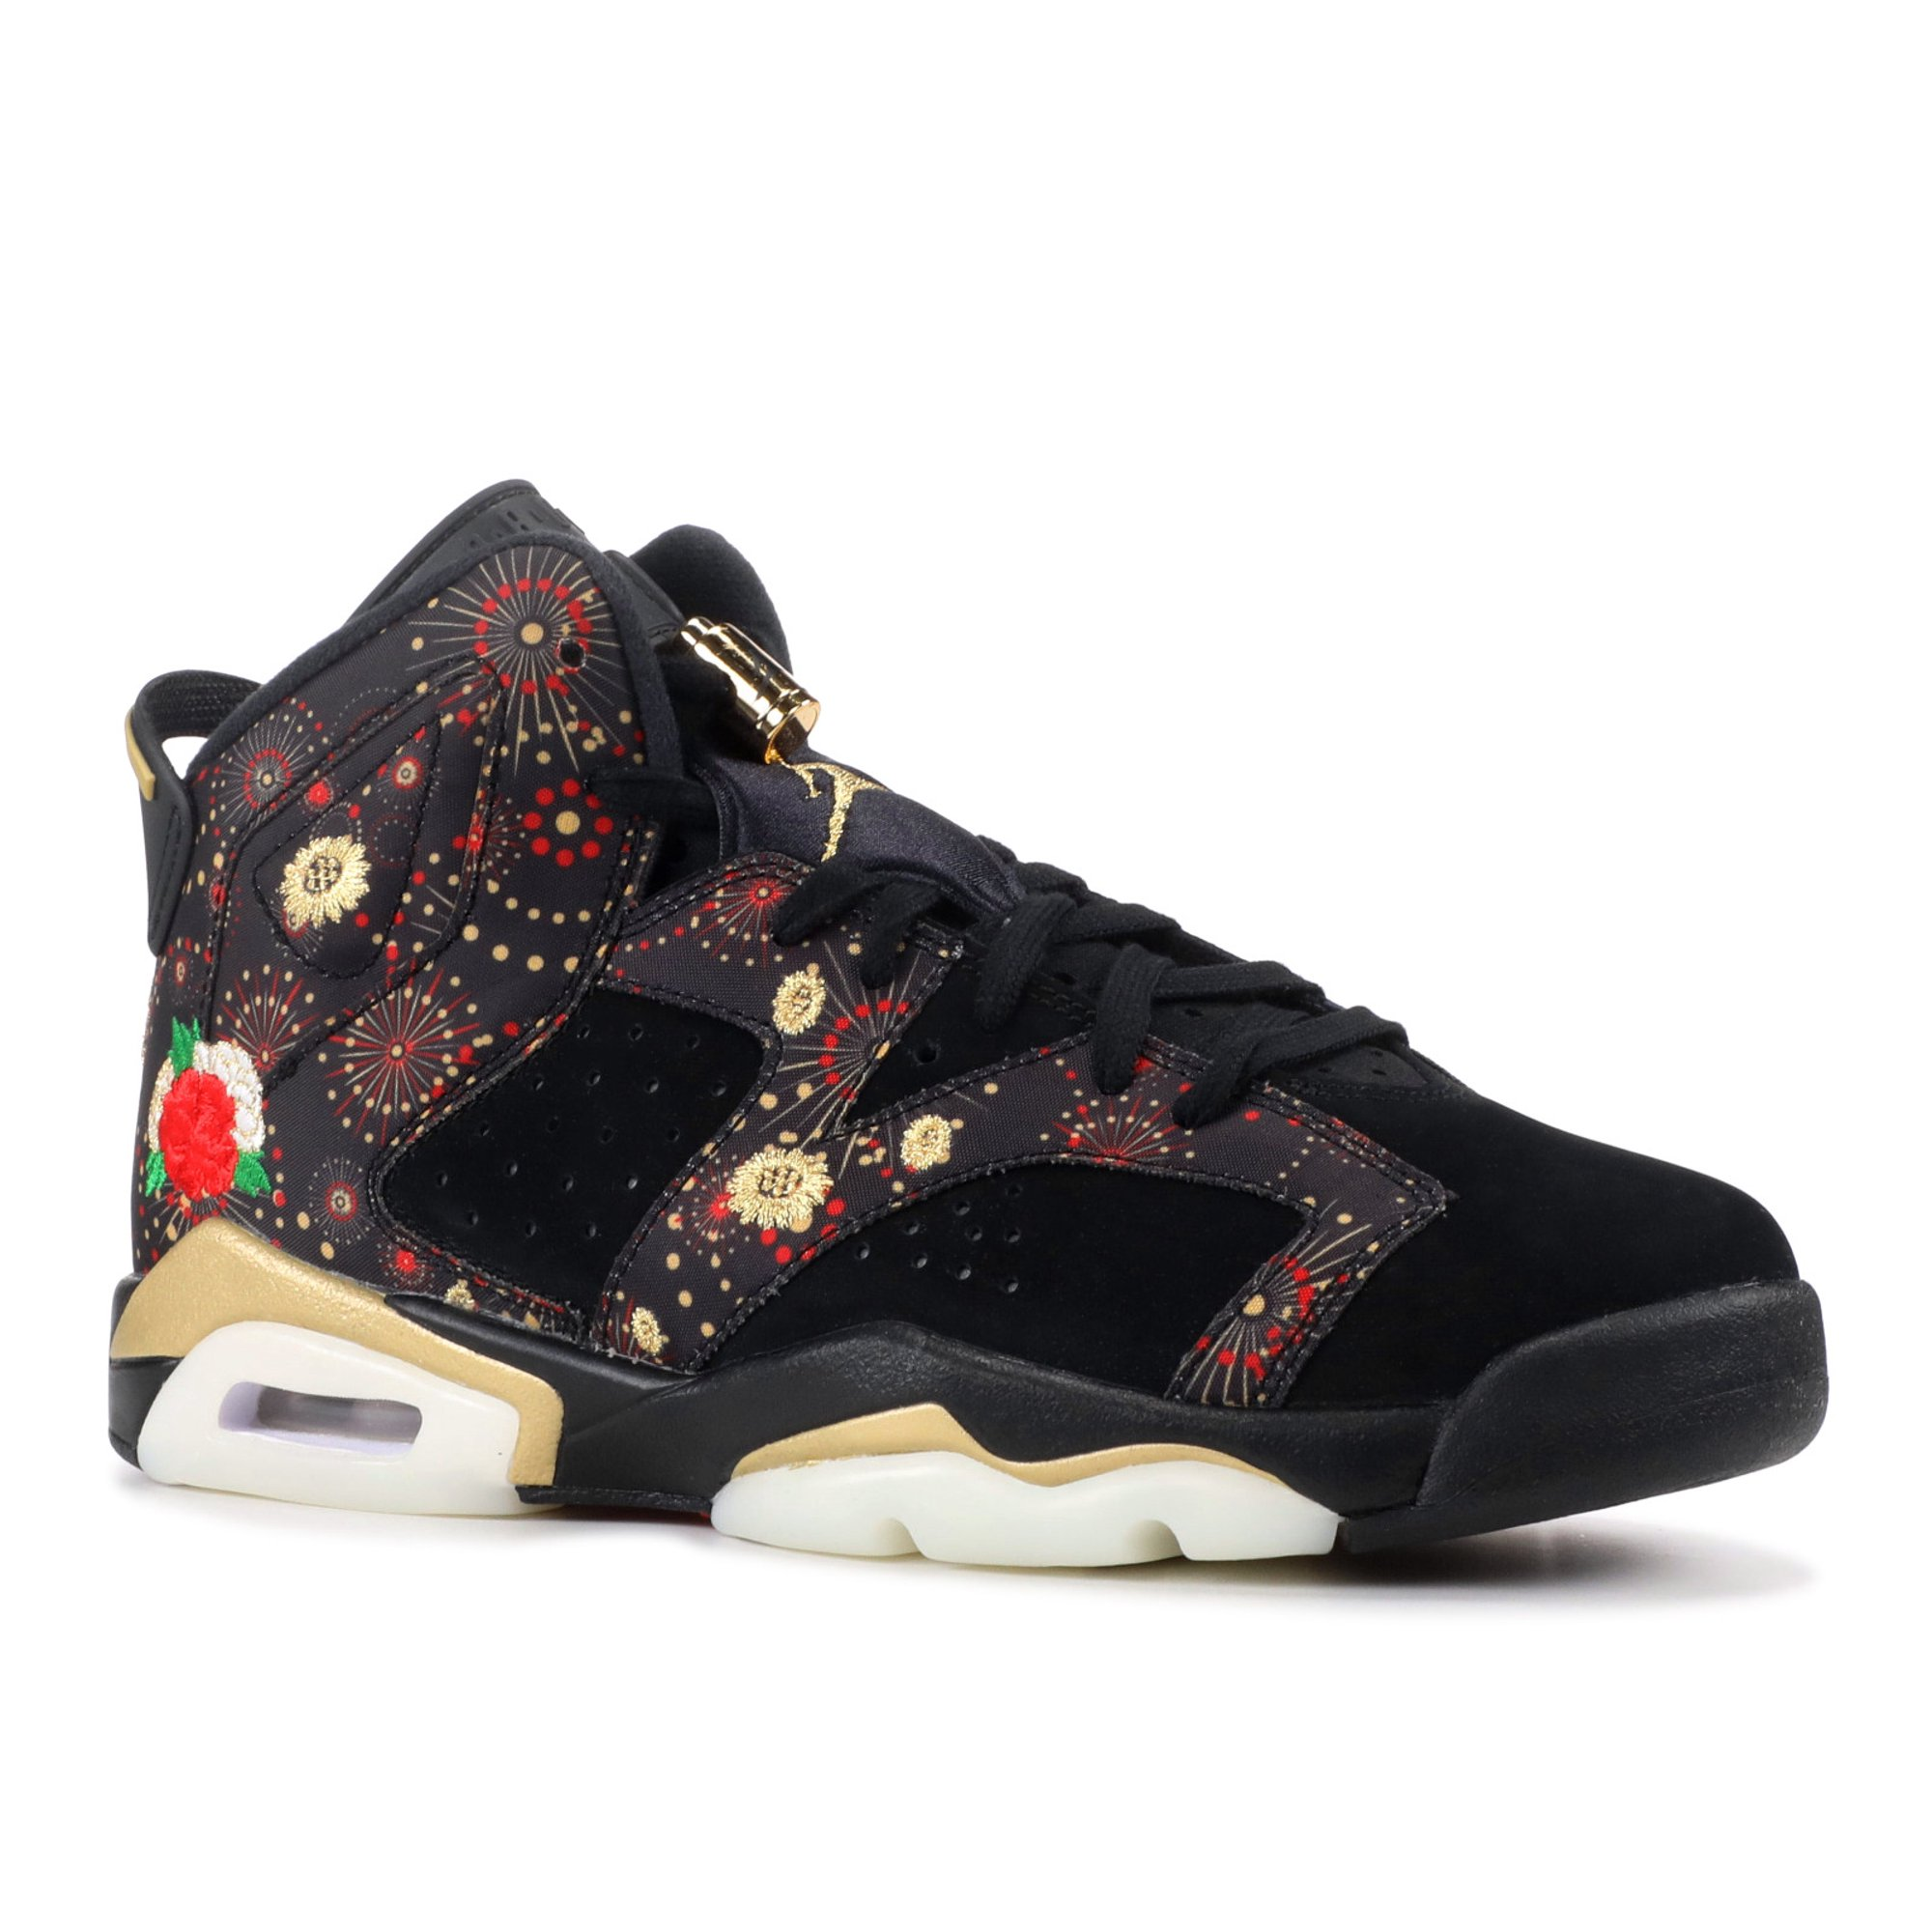 online store fc1d8 3fdfe Air Jordan - Unisex - Air Jordan 6 Retro Cny Bg 'Chinese New Year' -  Aa2495-021 - Size 7Y